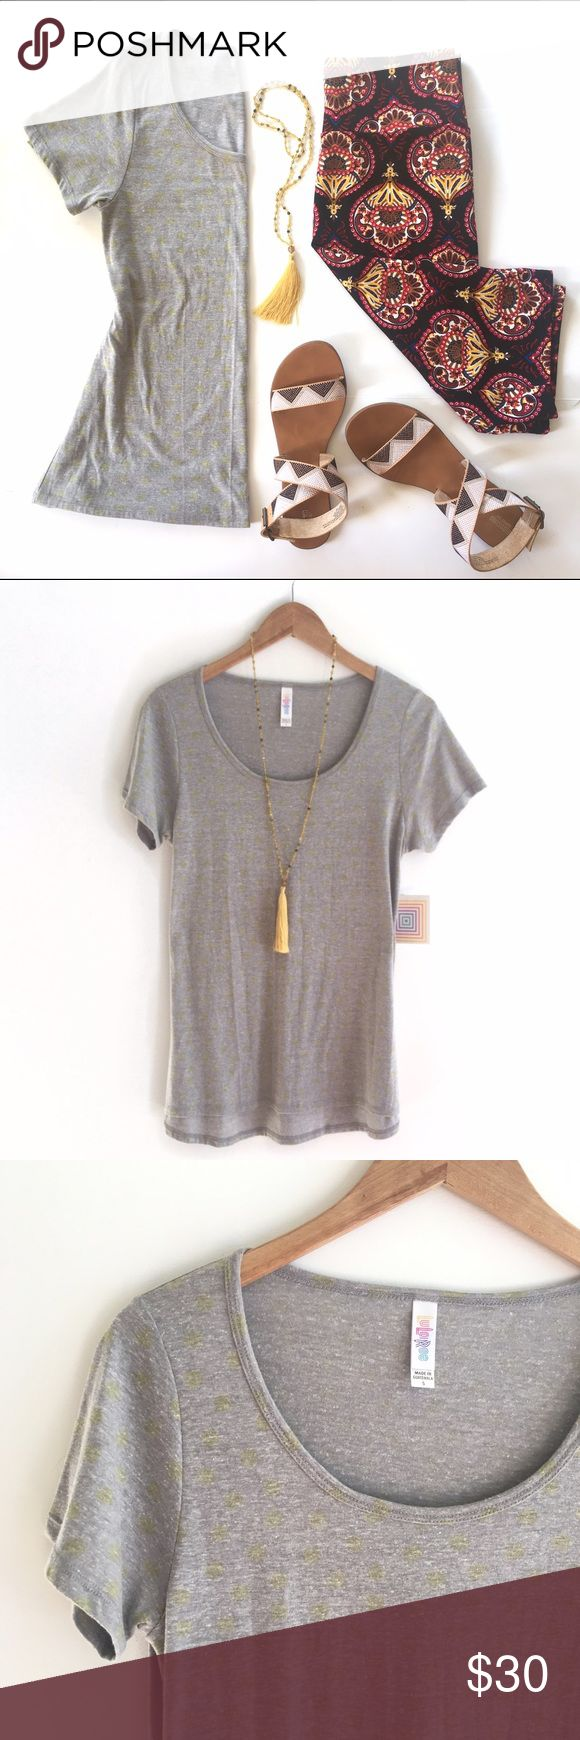 Dot Print Heather Scoop Neck T, NWT! Soft heather jersey with a subtle dot print in yellow. Cute for summer adventures in the park! Perfect paired with your fav denim and works great for print mixing. Sz Small Classic T by LuLaRoe runs slightly larger than other brands. Listing for T only but outfit shown available. Or request one styled especially for you from my mix or vintage and new ! LuLaRoe Tops Tees - Short Sleeve